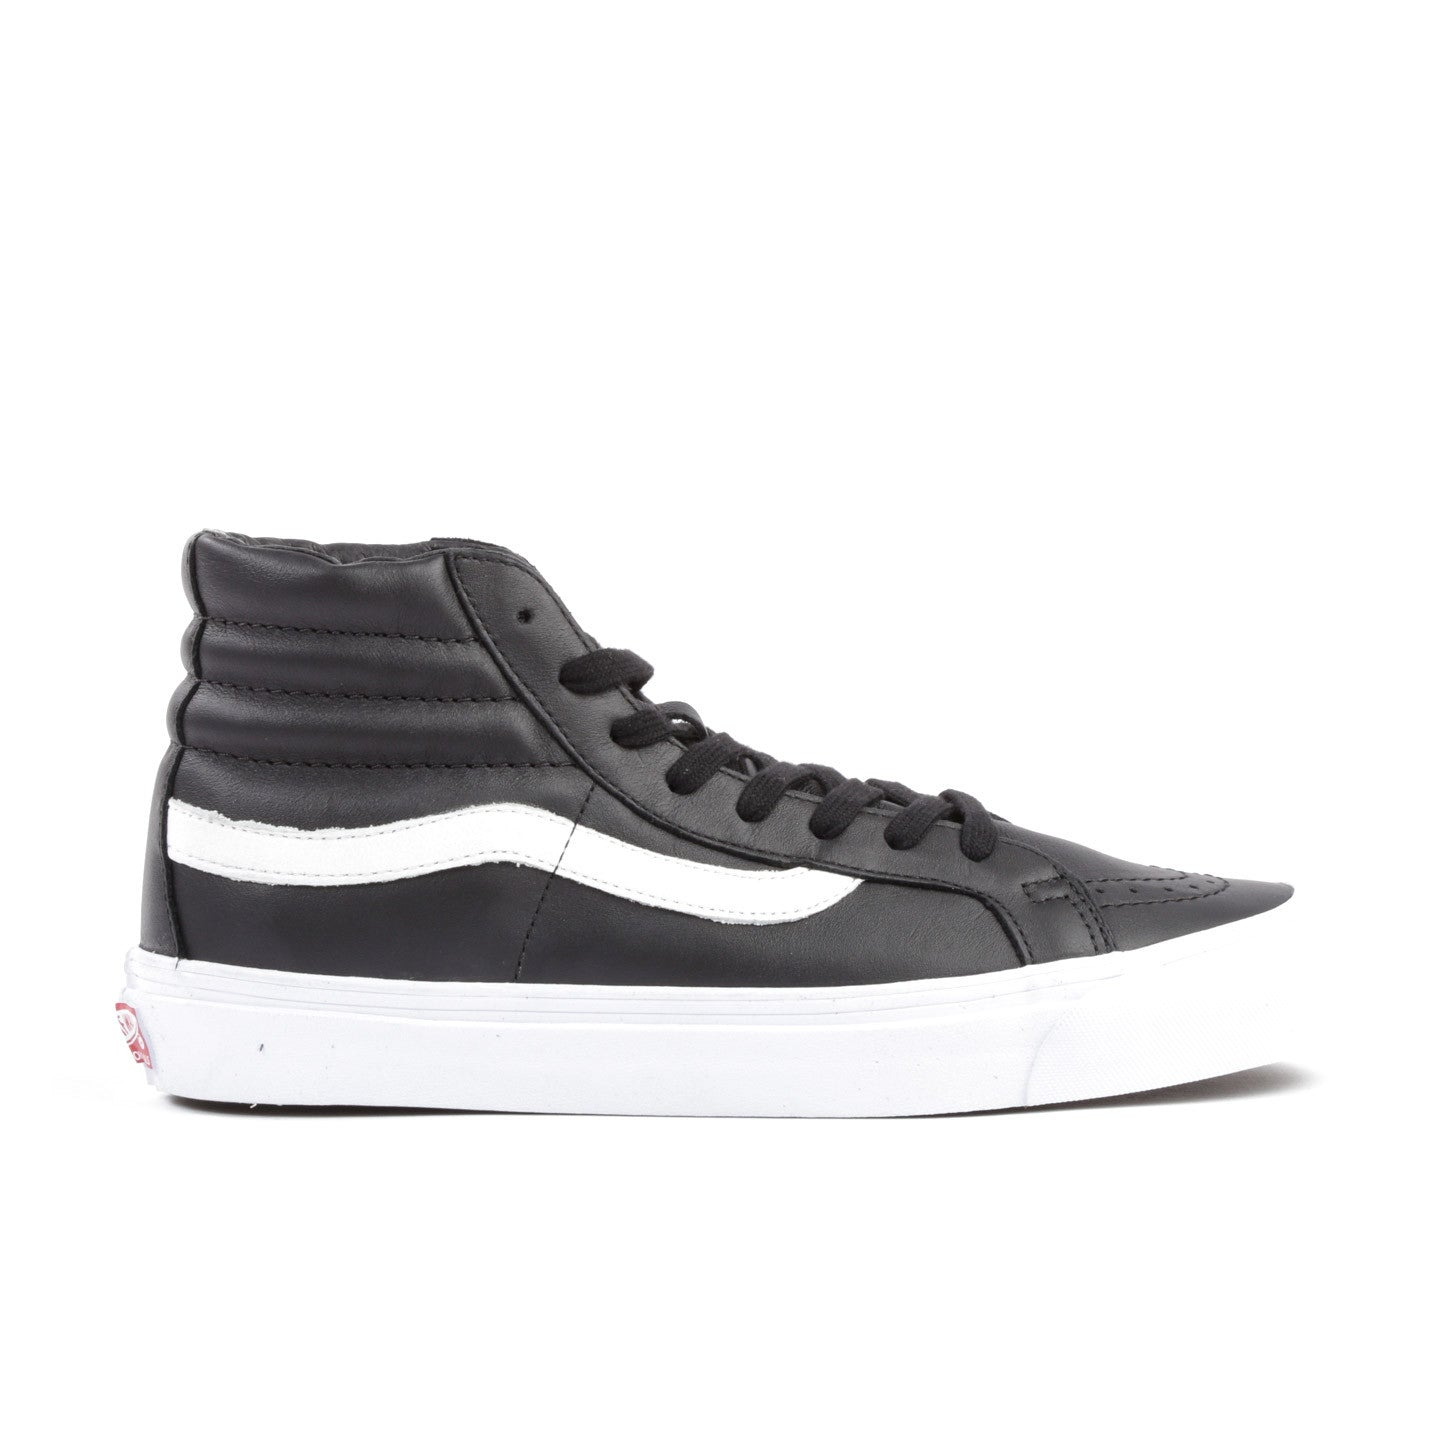 VAULT BY VANS OG SK8-HI LX BLACK LEATHER